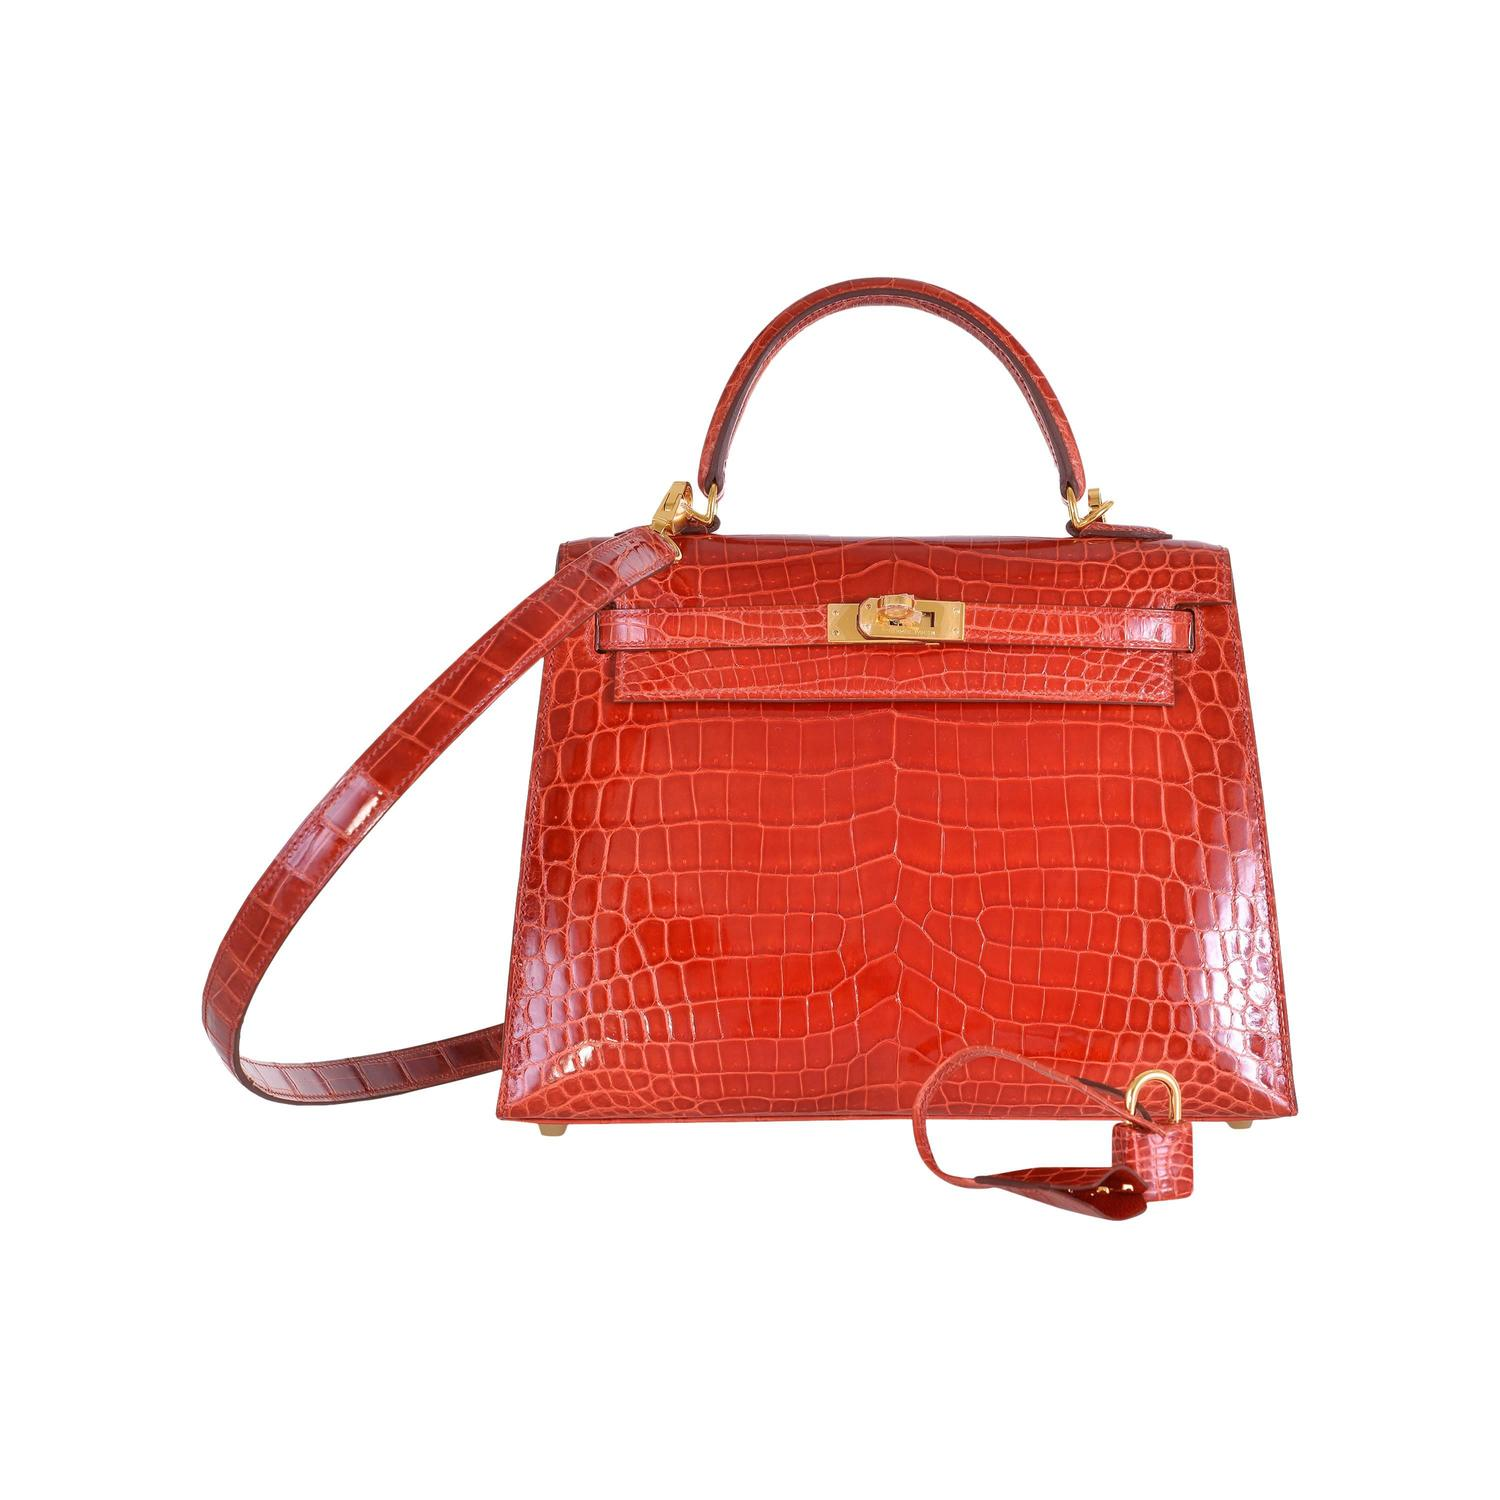 a4575a05f30f 2015 hermes bags prices sports